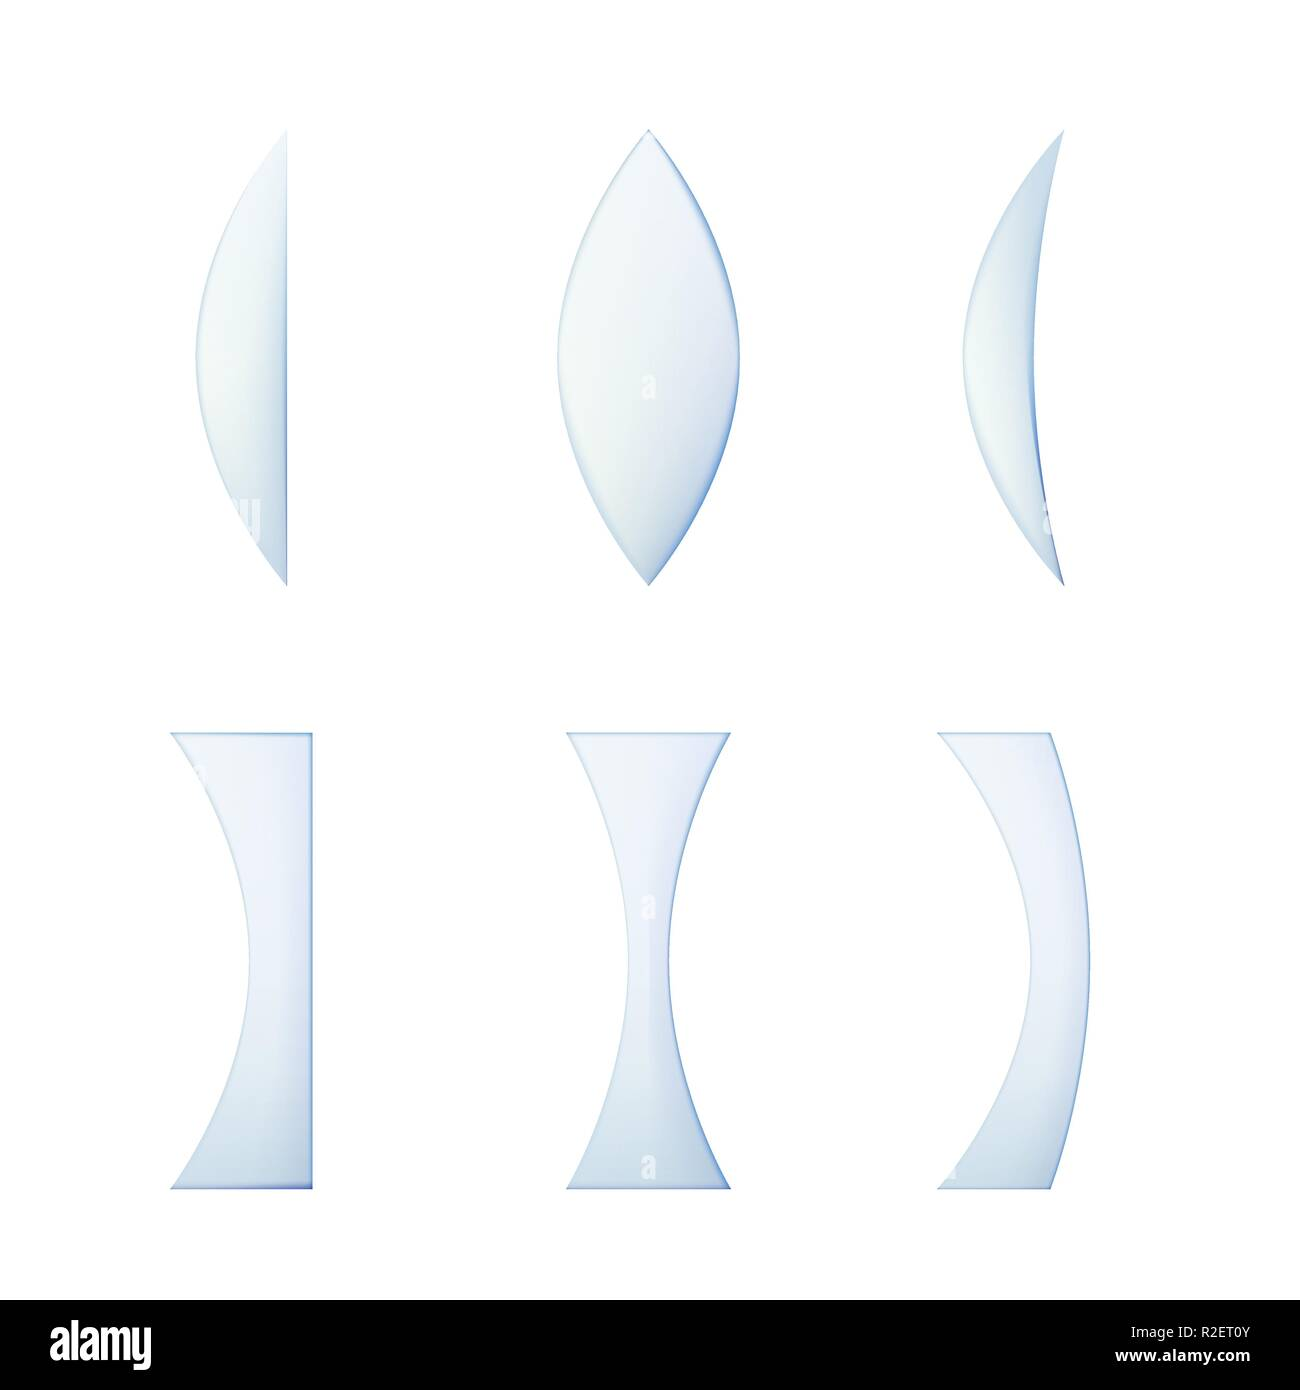 Set of glass lenses of different cross sections. Vector illustration. Collection of optical devices. - Stock Image